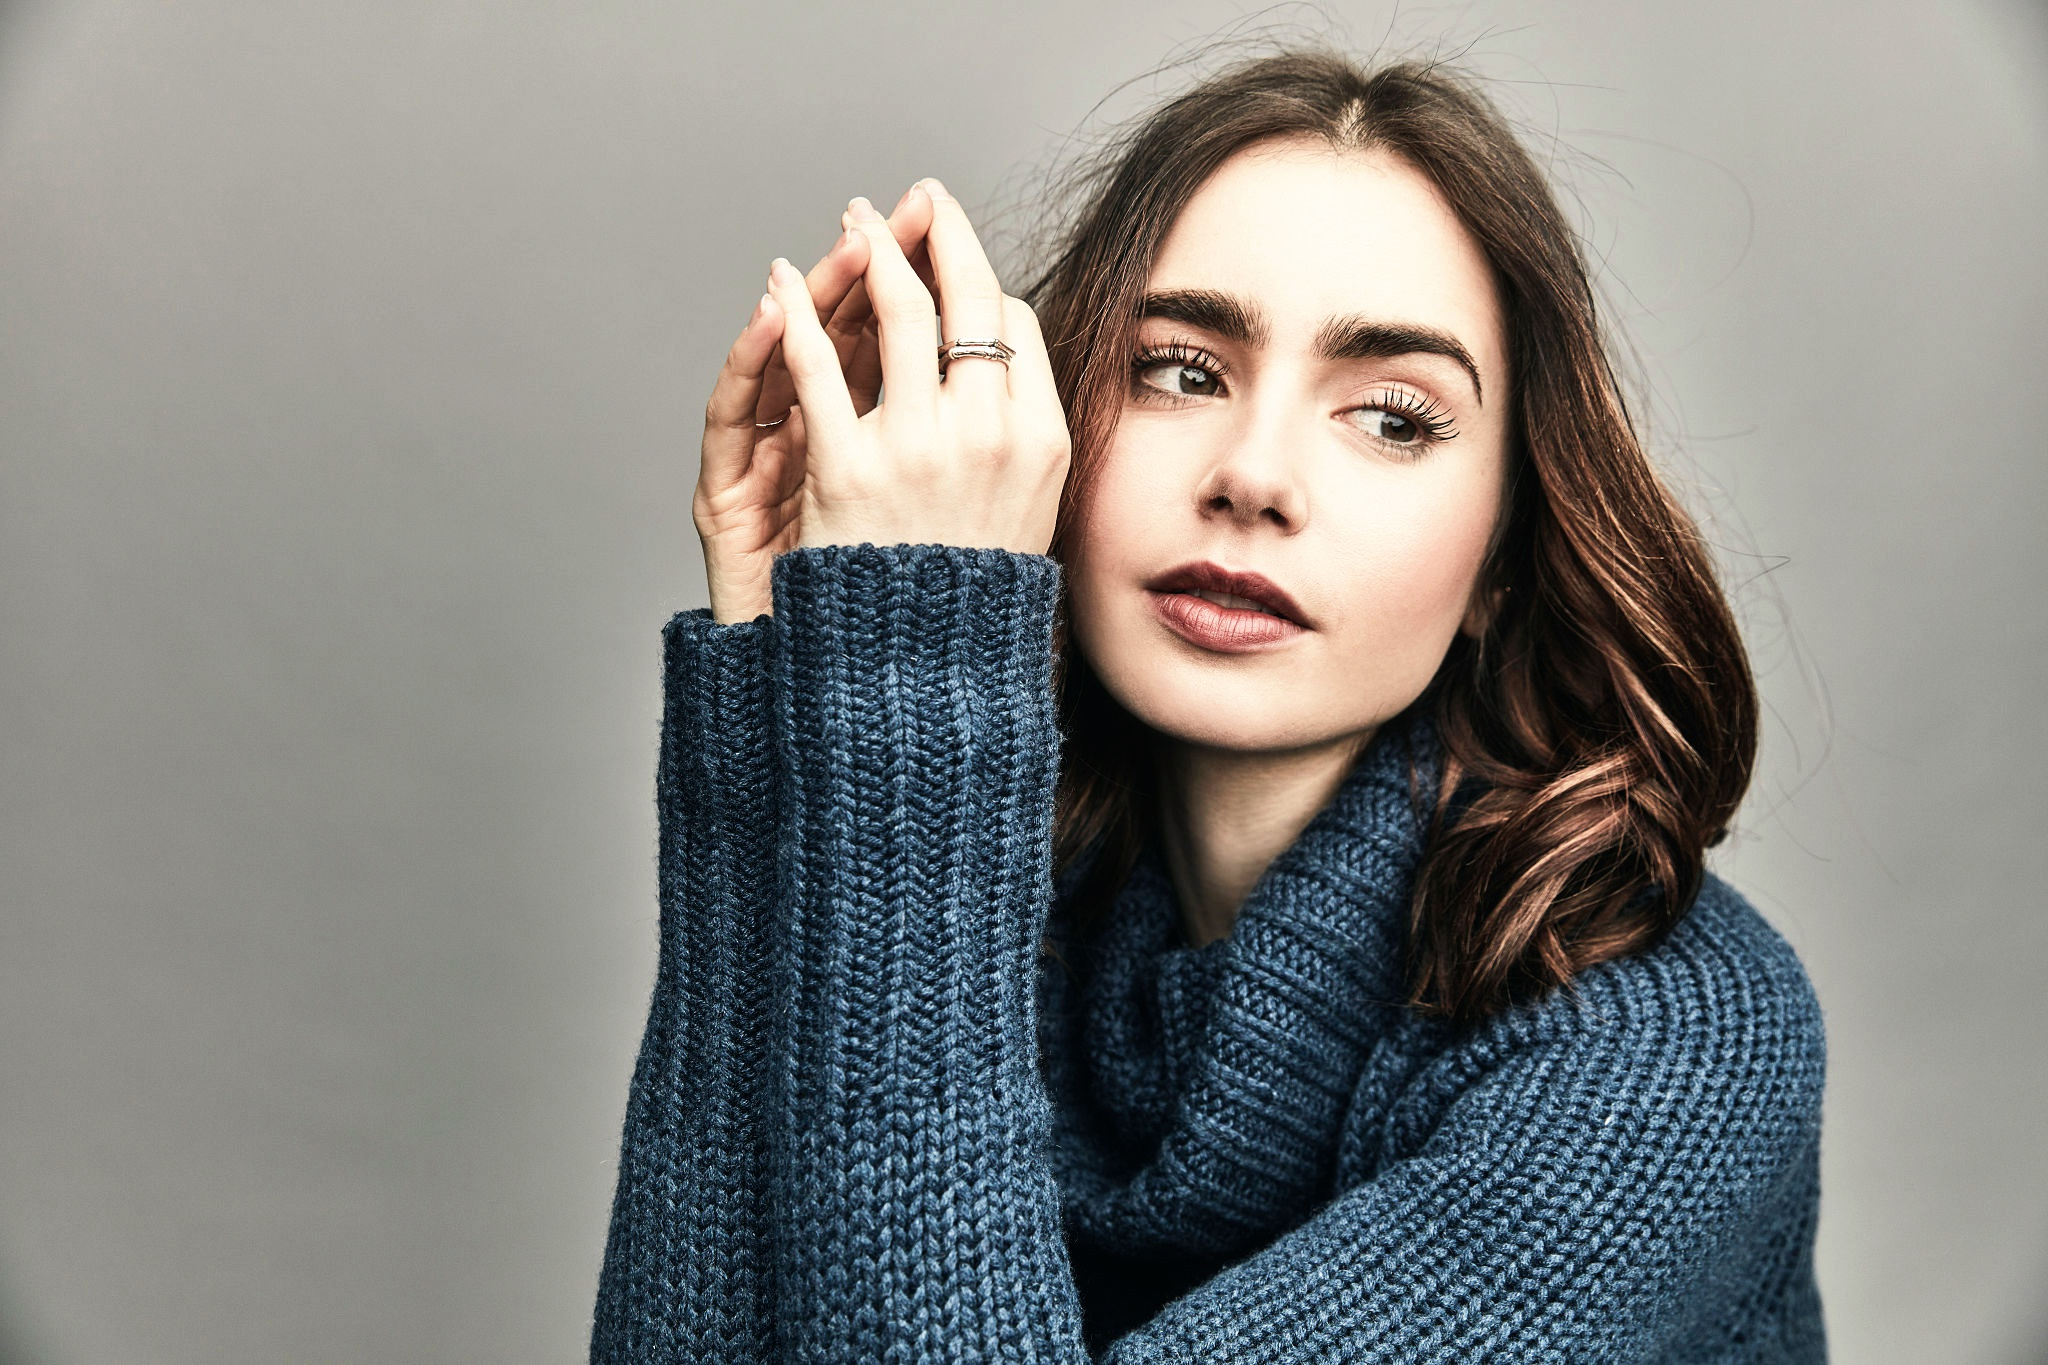 Lily Collins HD Wallpaper Background Image 2048x1365 ID 2048x1365